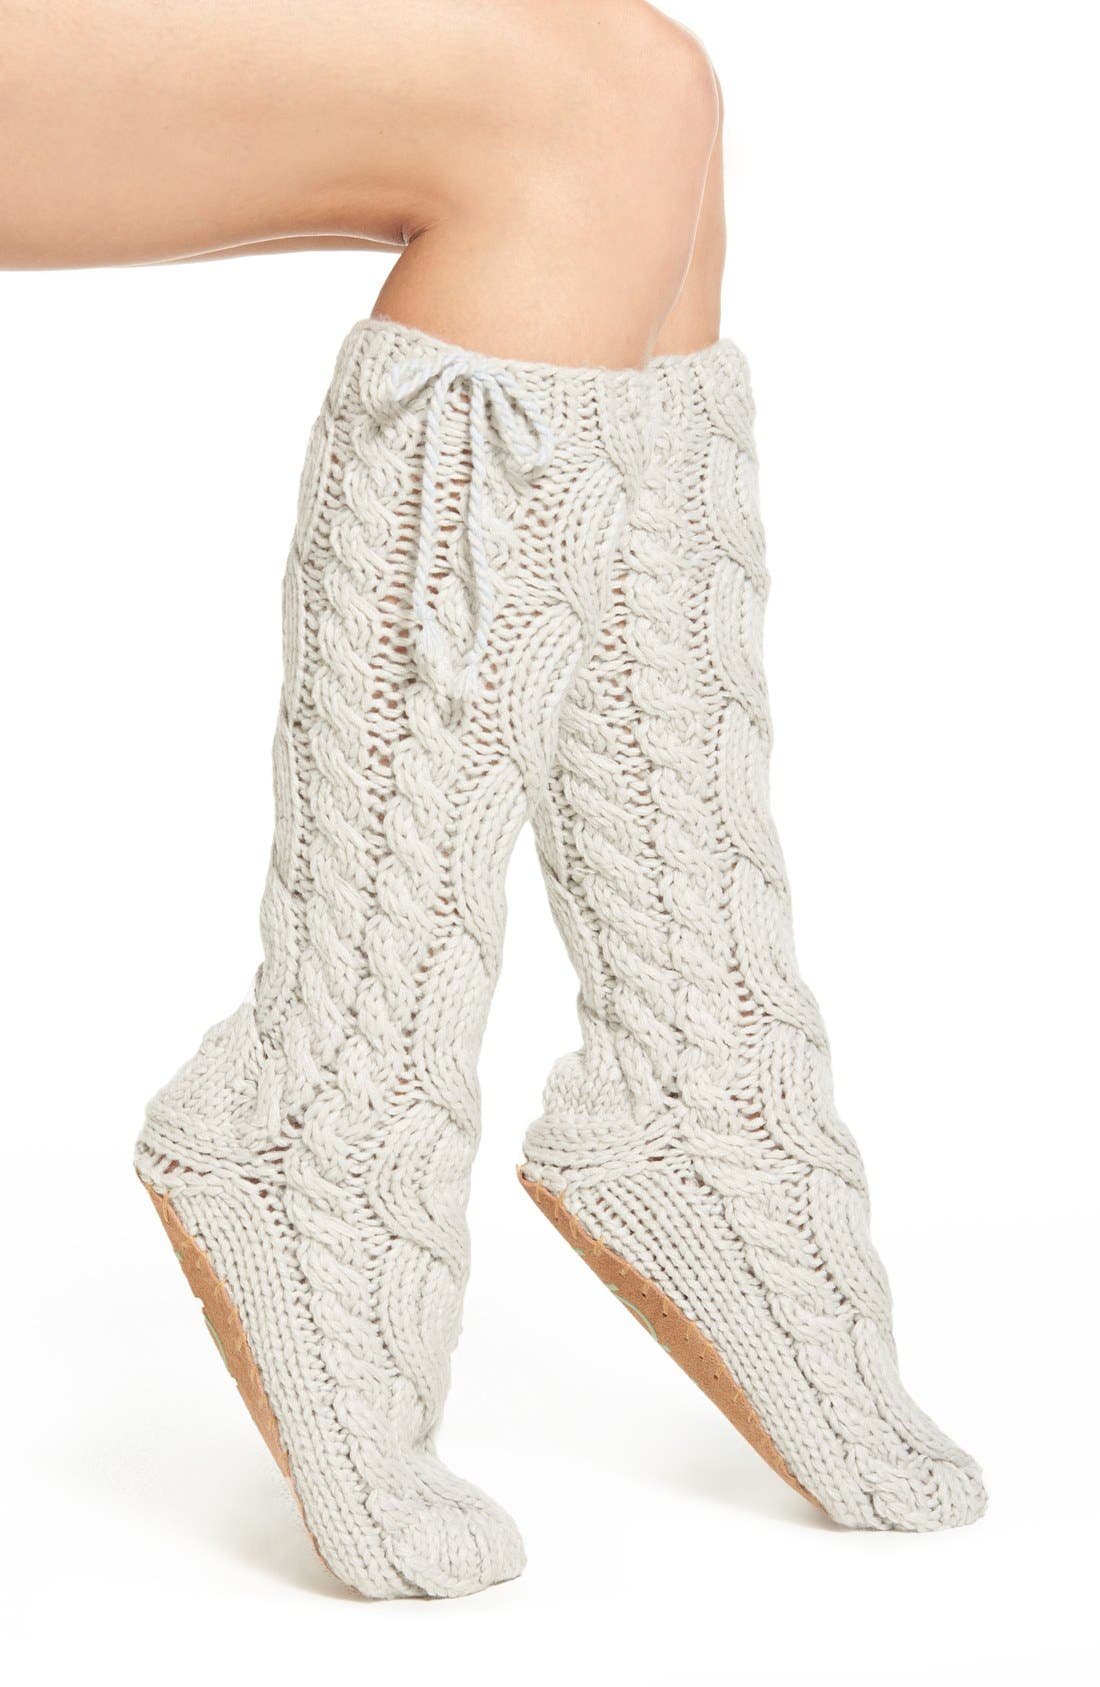 LEMON 'Arctic' Cable Knit Knee High Slippers, Main, color, 020